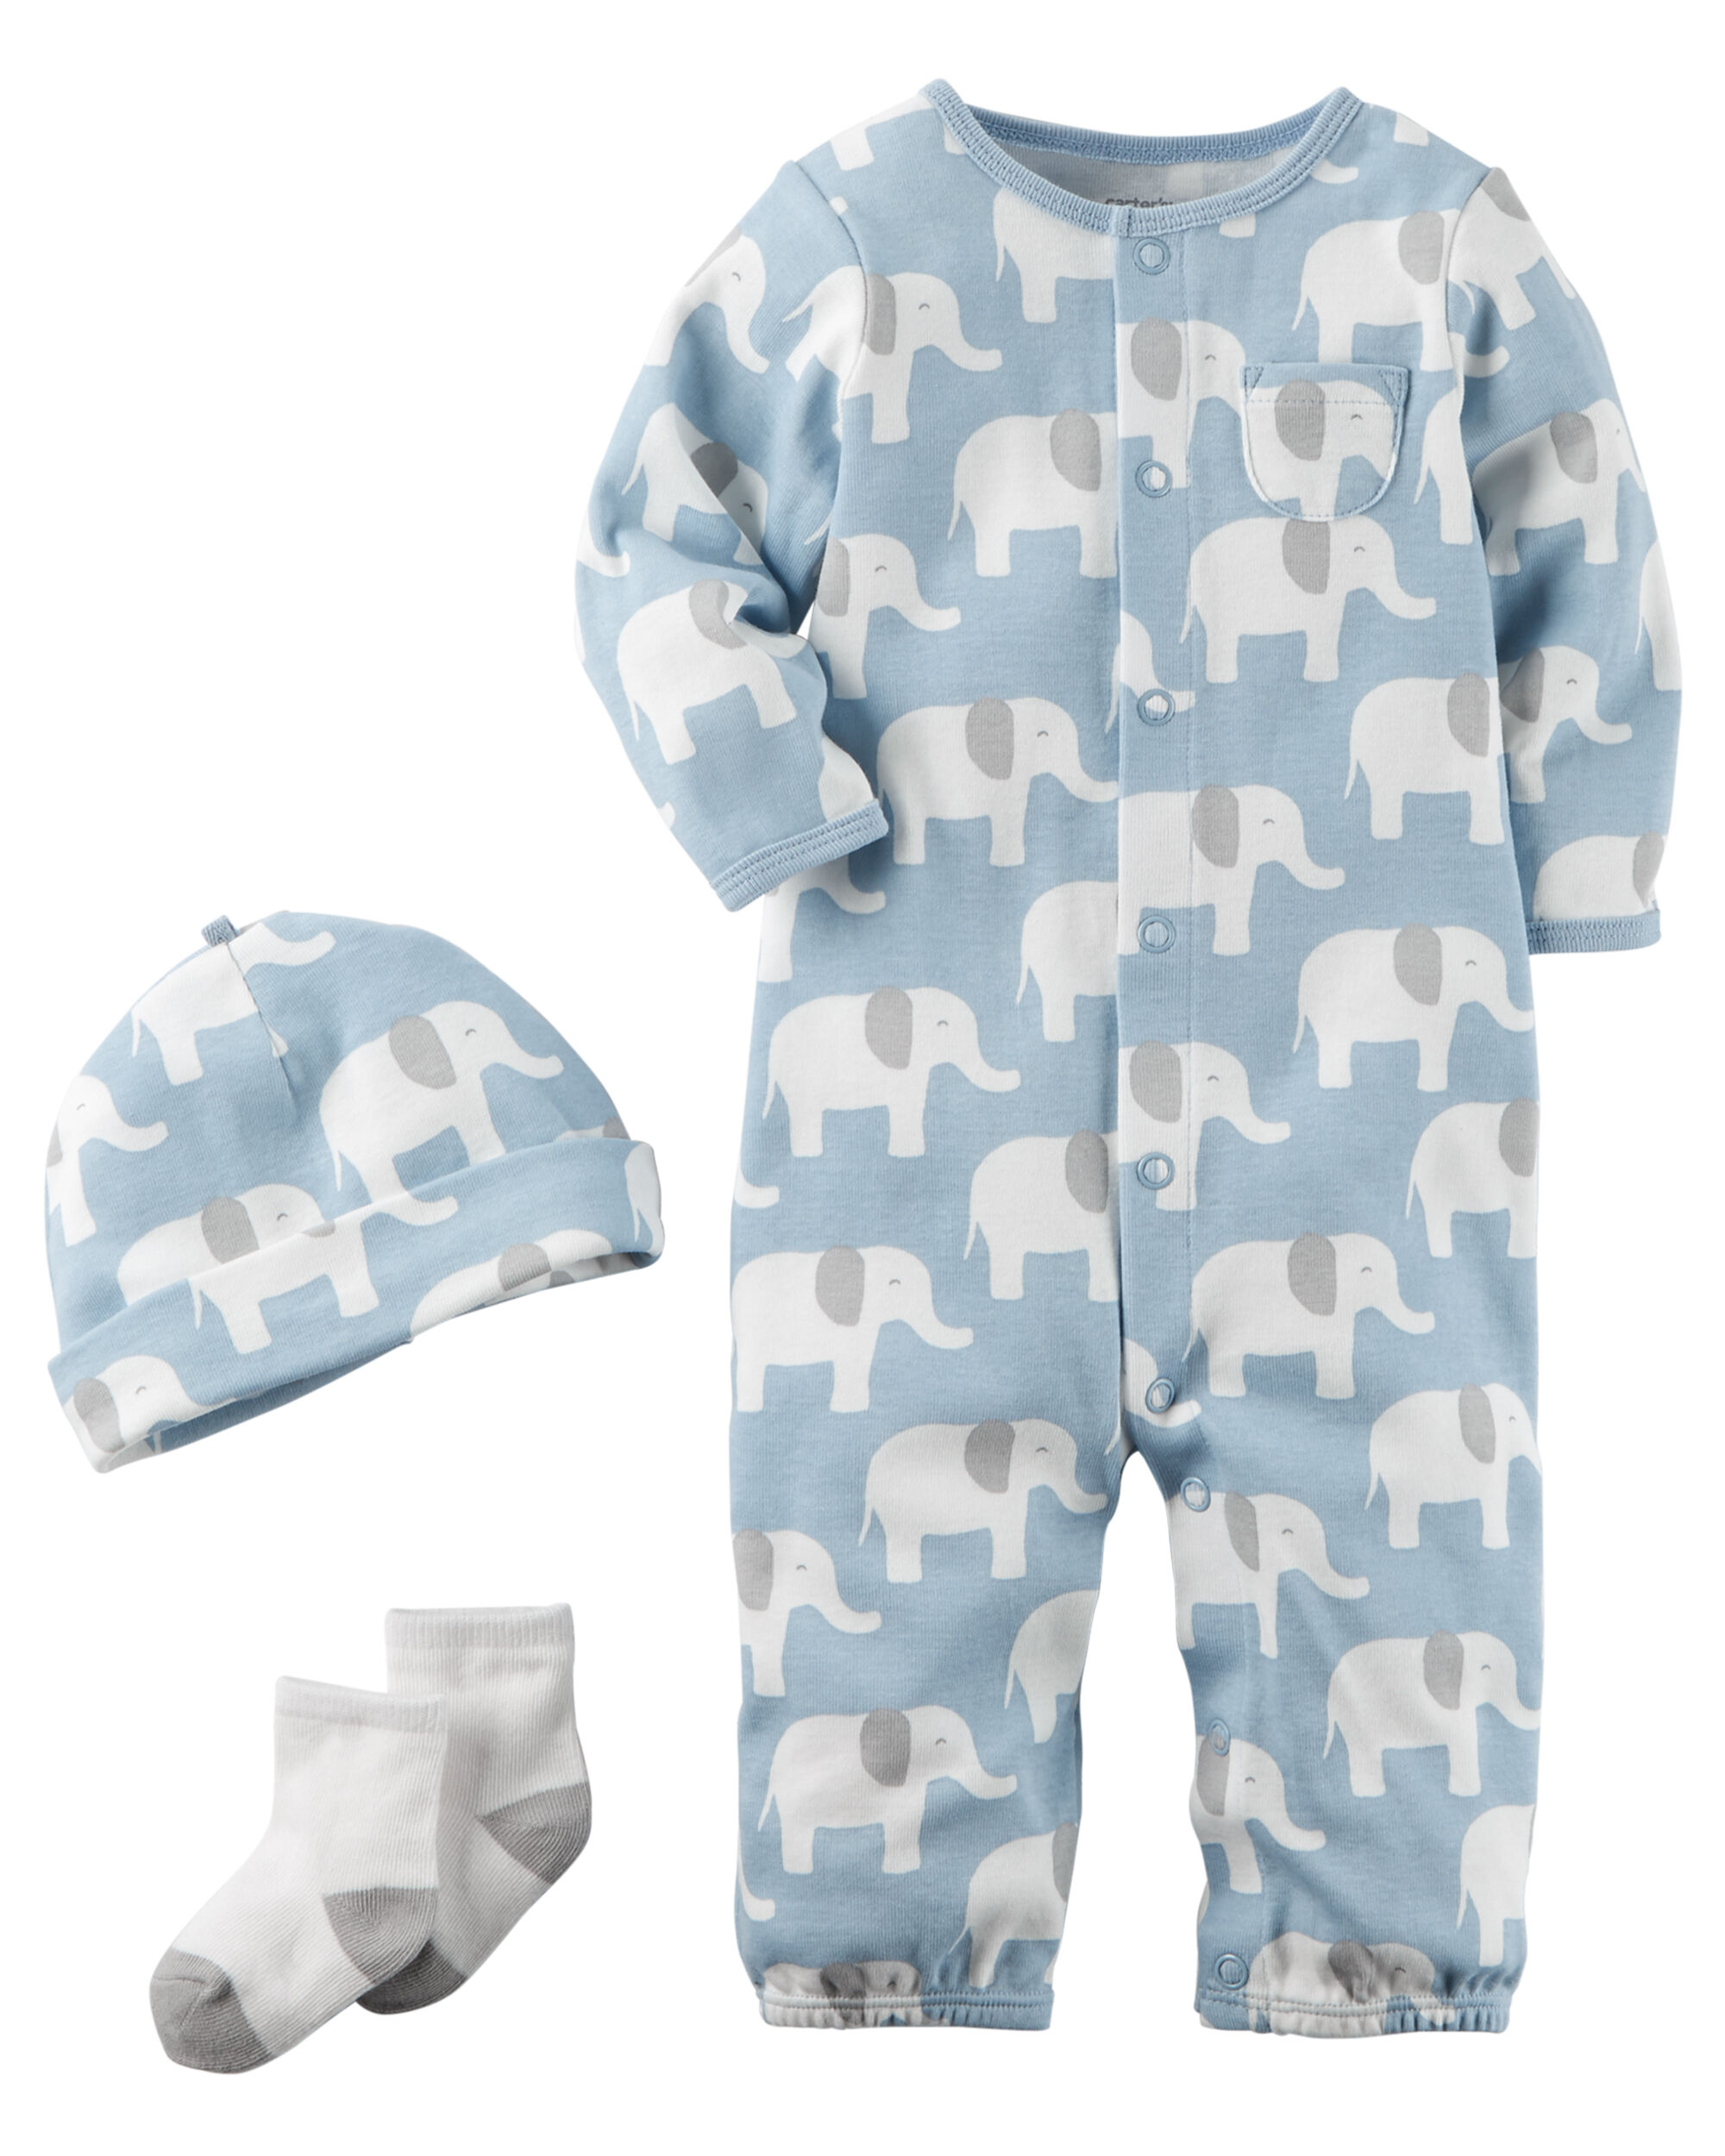 8e01008de 3-Piece Babysoft Take-Me-Home Set